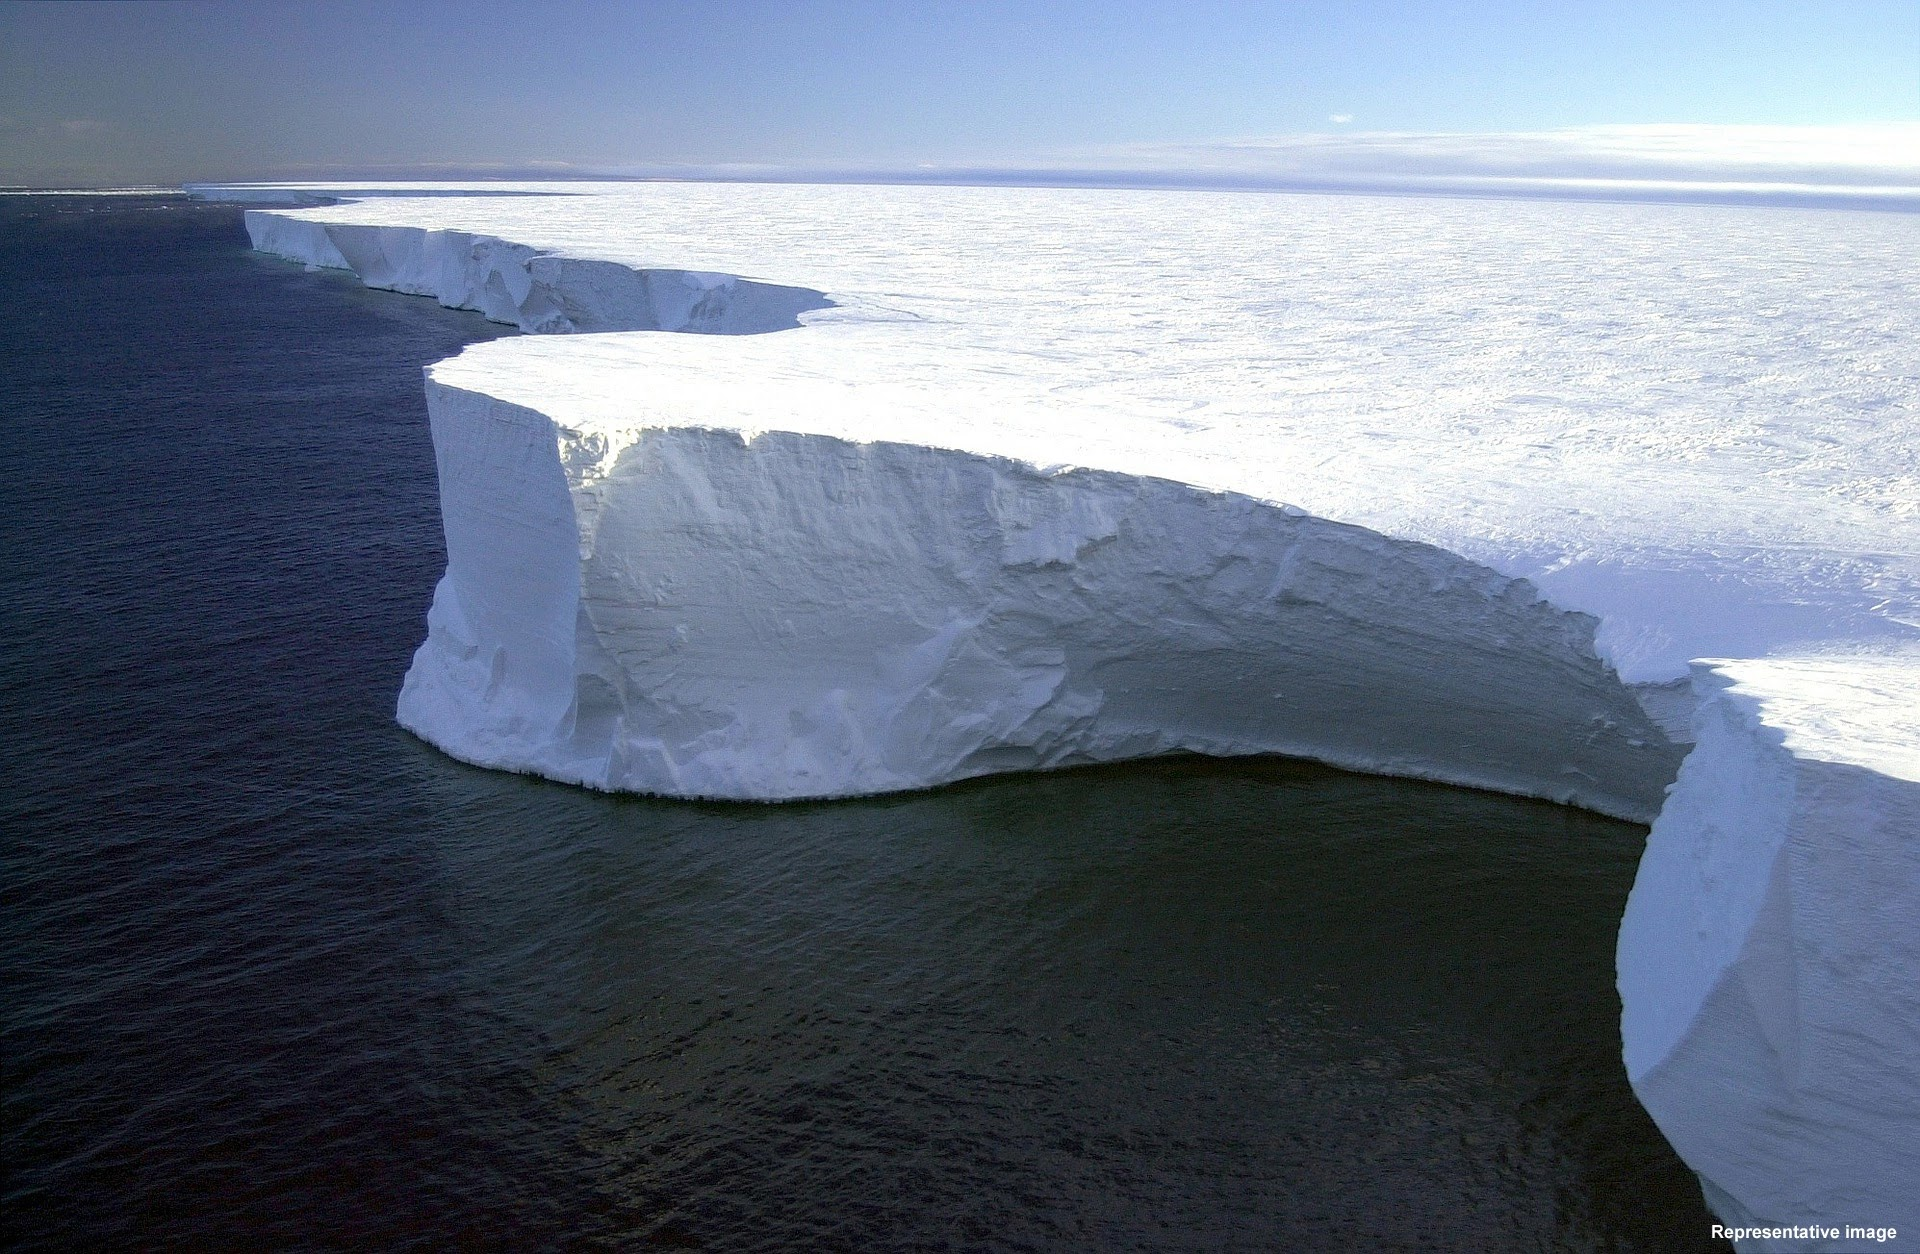 World's Largest Iceberg 'A76' Breaks Off From Antarctica